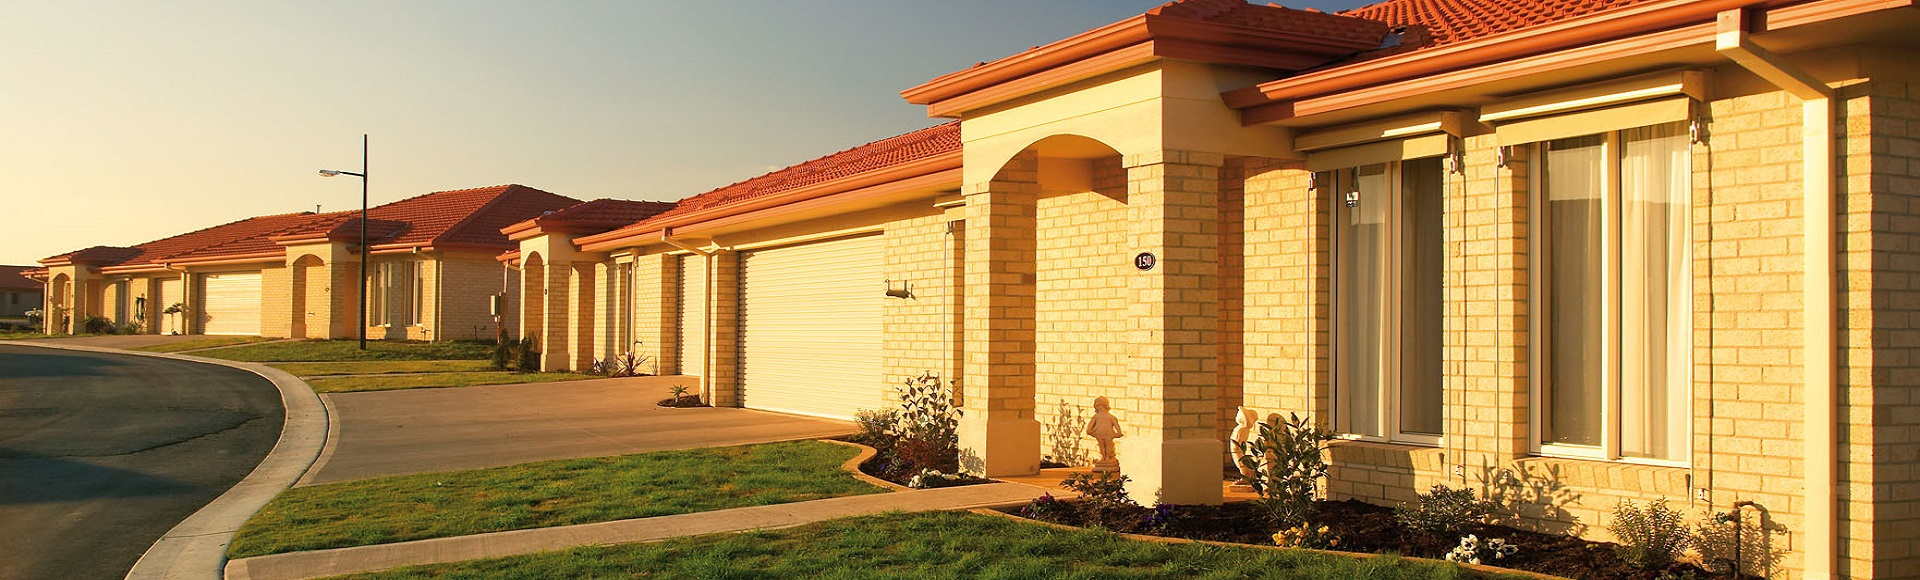 Independent living villas at Taylors Hill Village